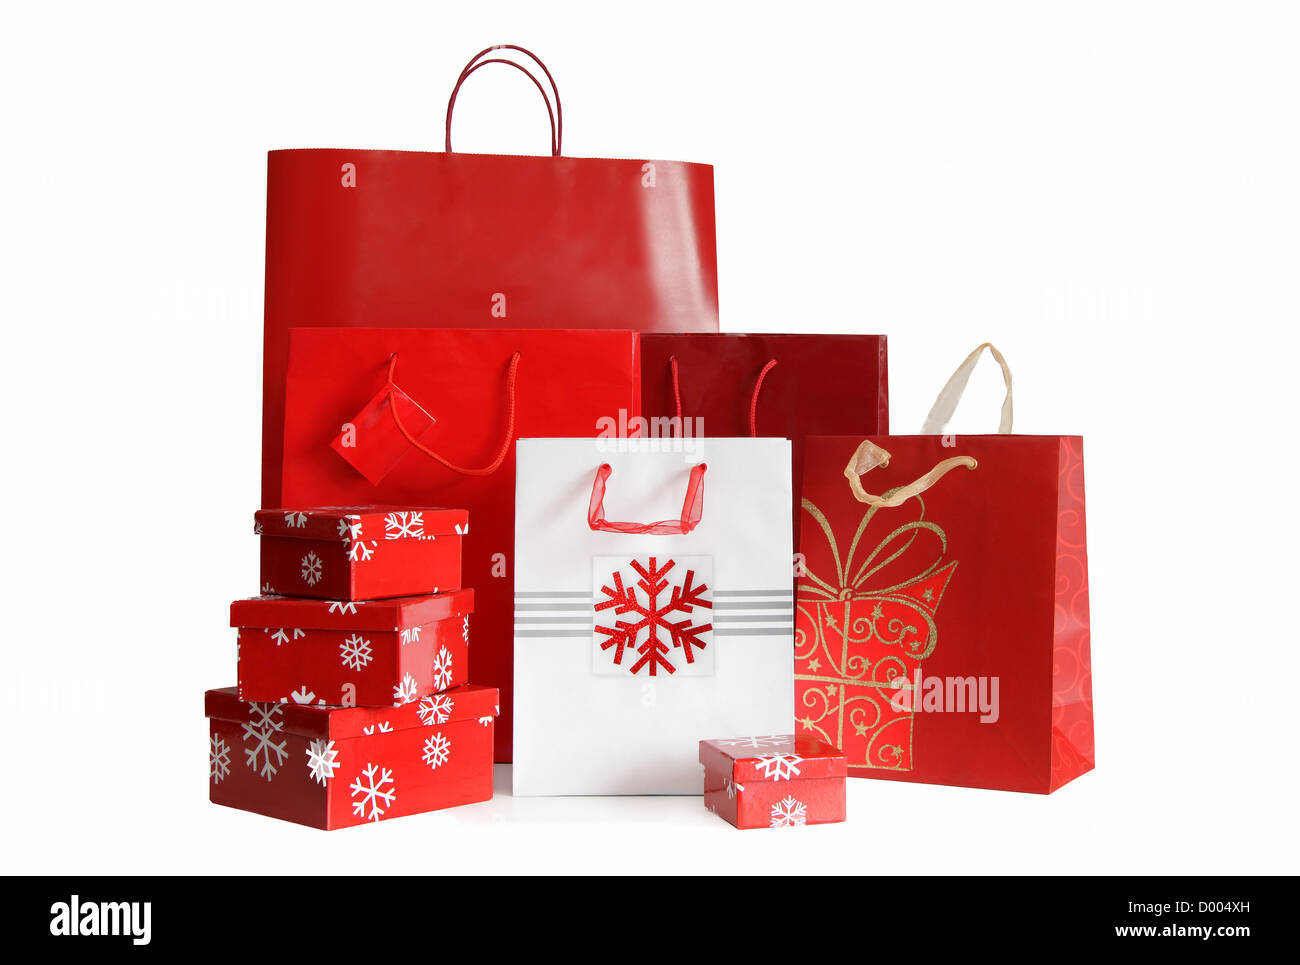 Various sizes of holiday shopping bags and gift boxes on white background - Stock Image